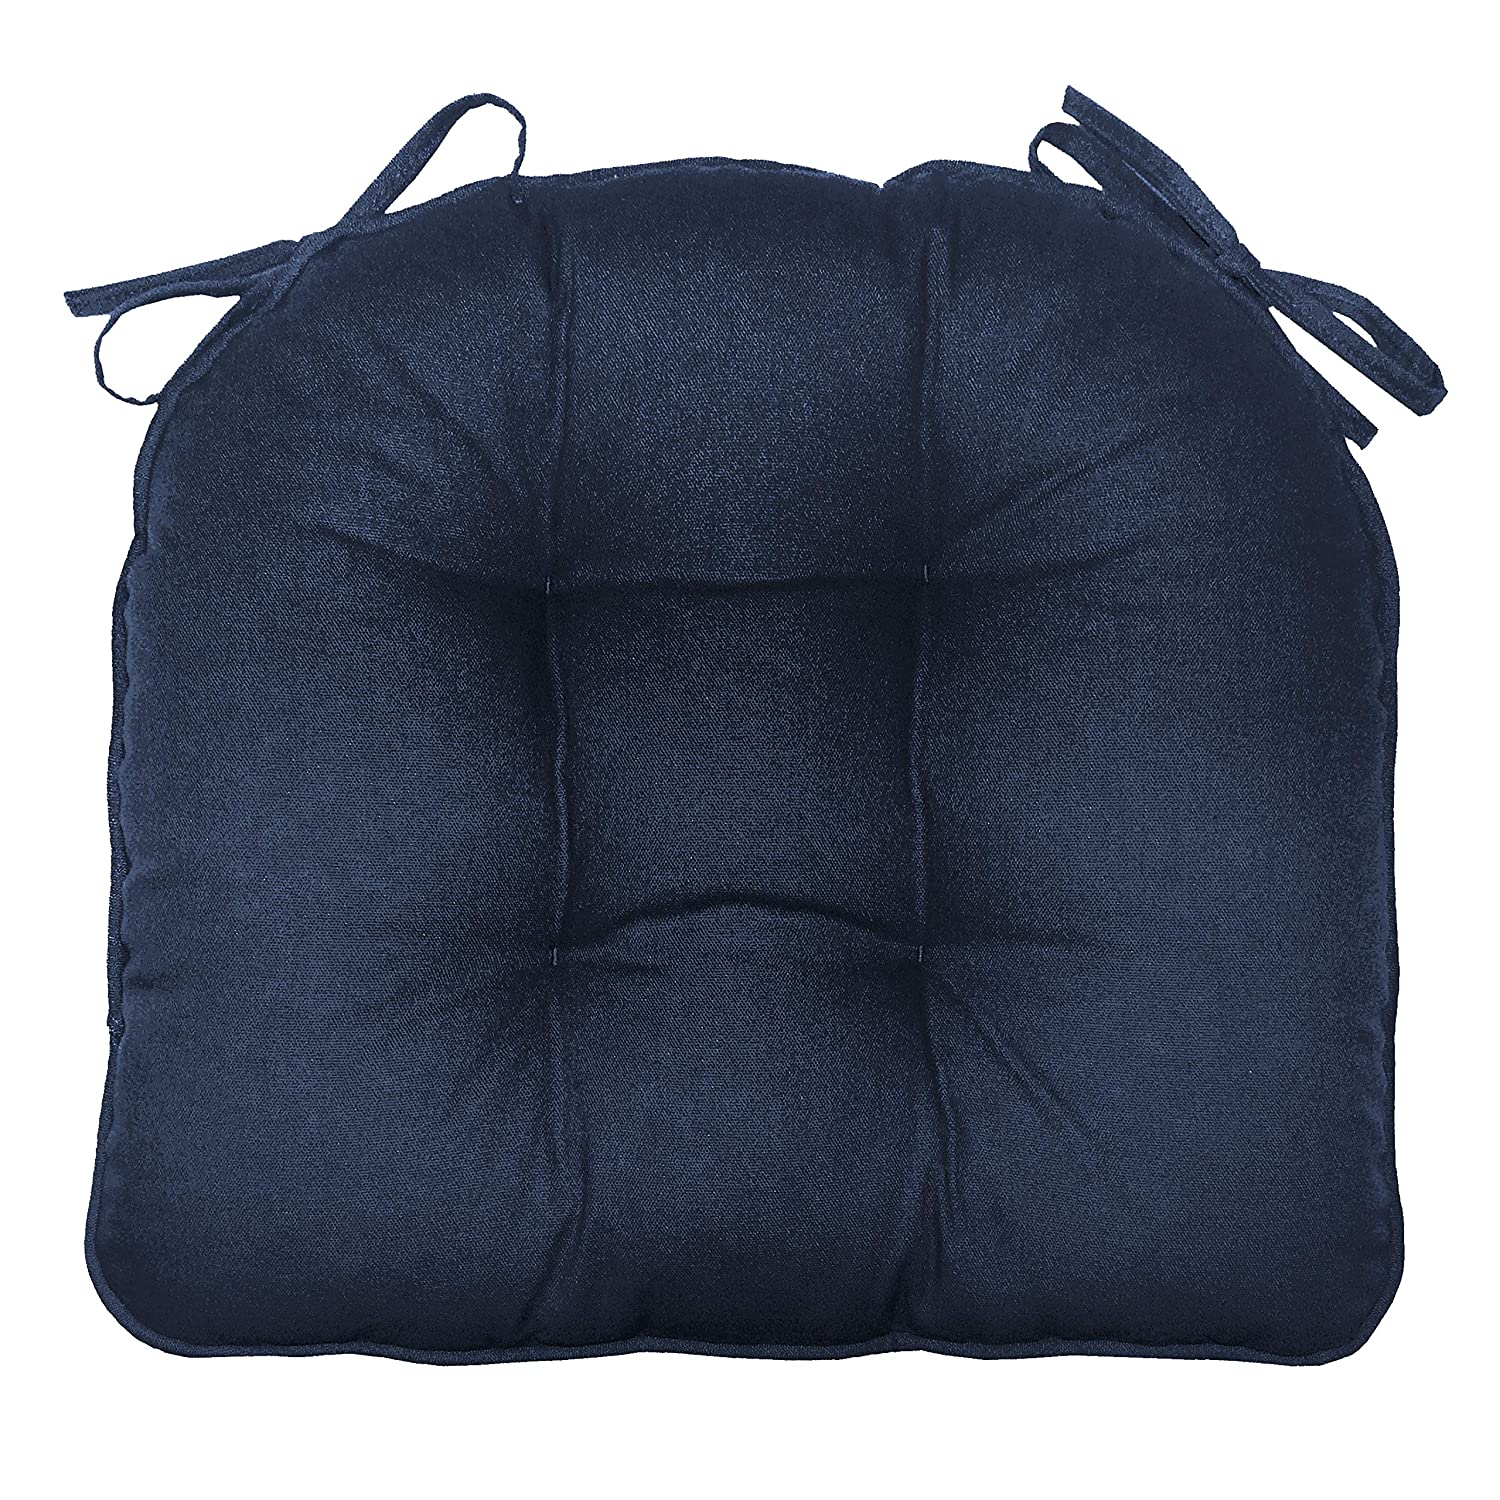 Barnett Products Welted Dining Chair Pad with Ties - Solid Color Cotton Duck - Extra Thick - Reversible, Latex Fill, Tufted Cushion (Navy Blue)